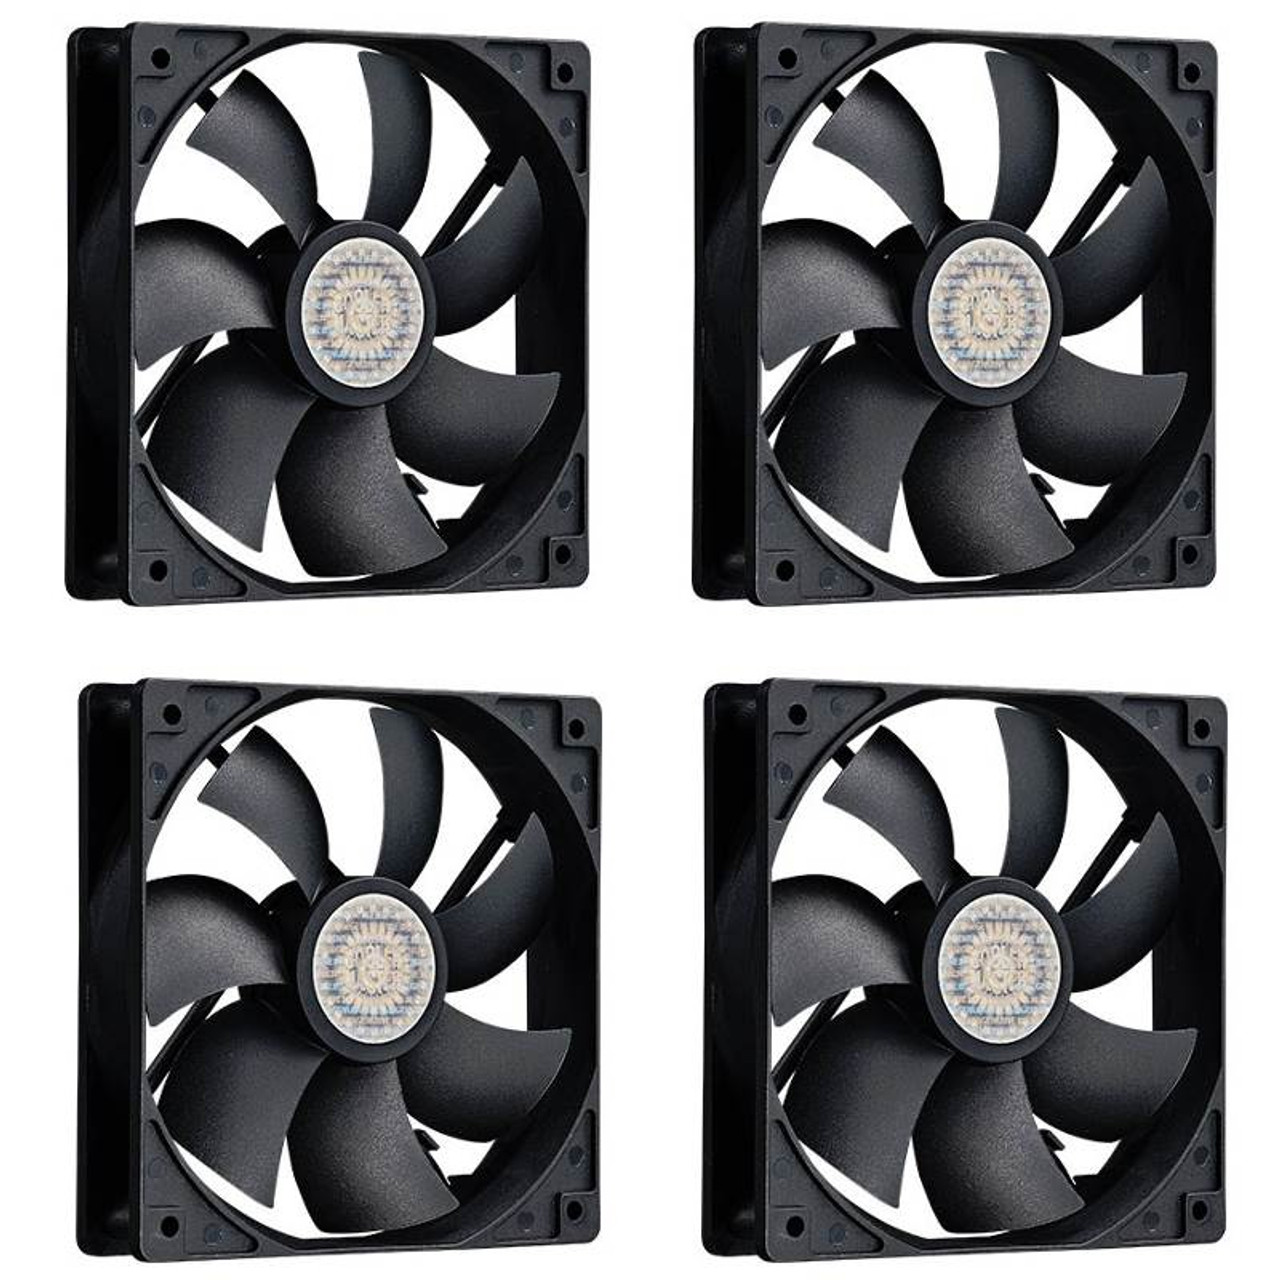 Image for Cooler Master 120mm Case Fans 4-Pack CX Computer Superstore